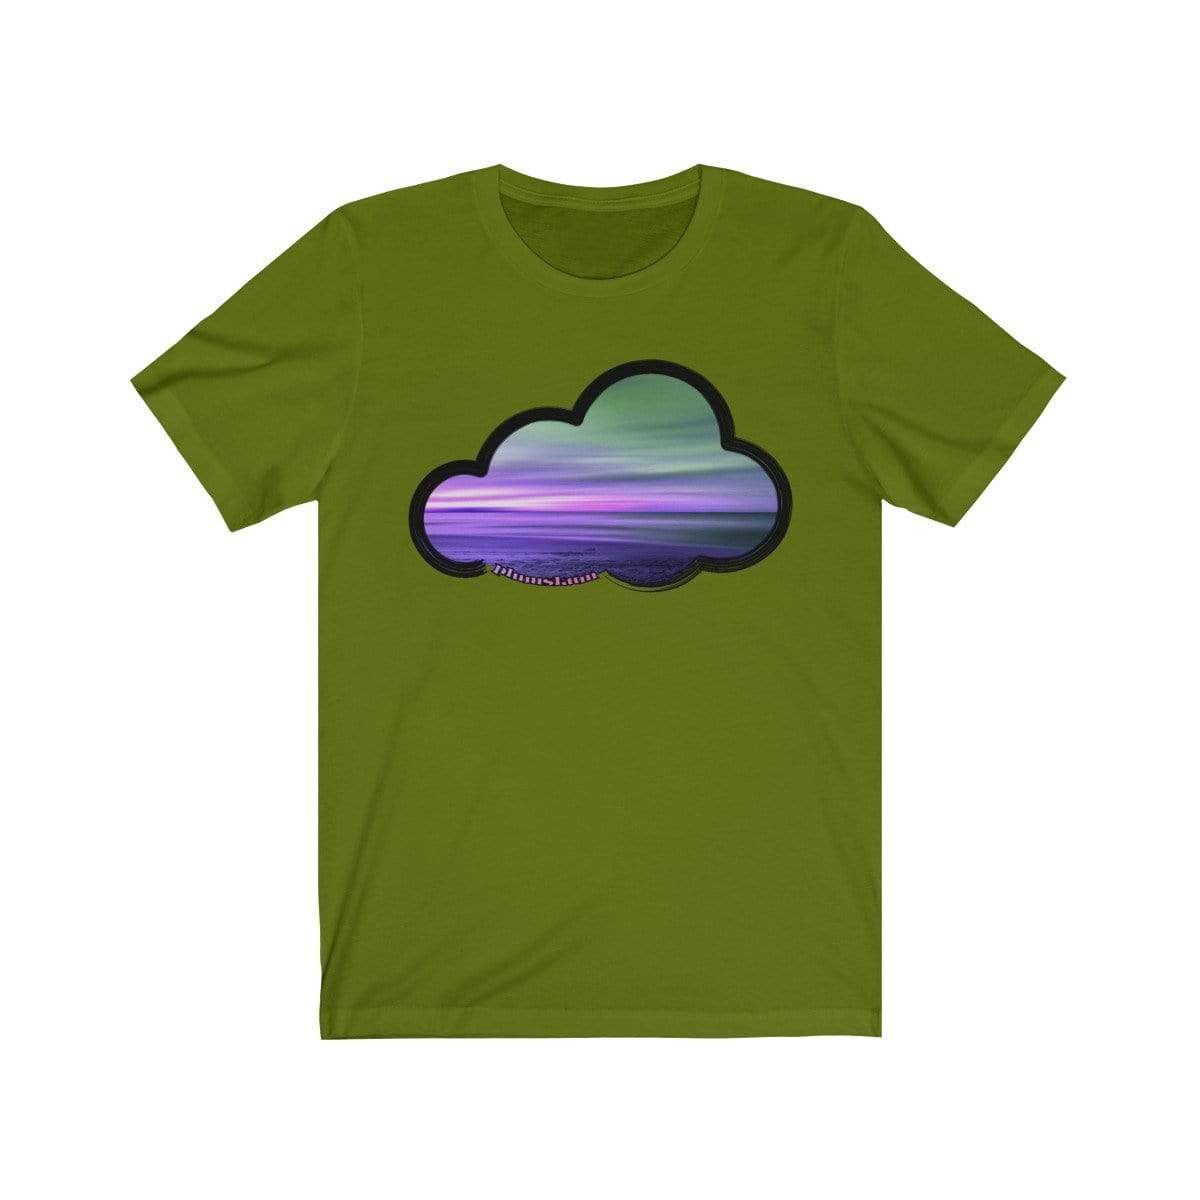 Printify T-Shirt Leaf / M Beaches Art Clouds Tee